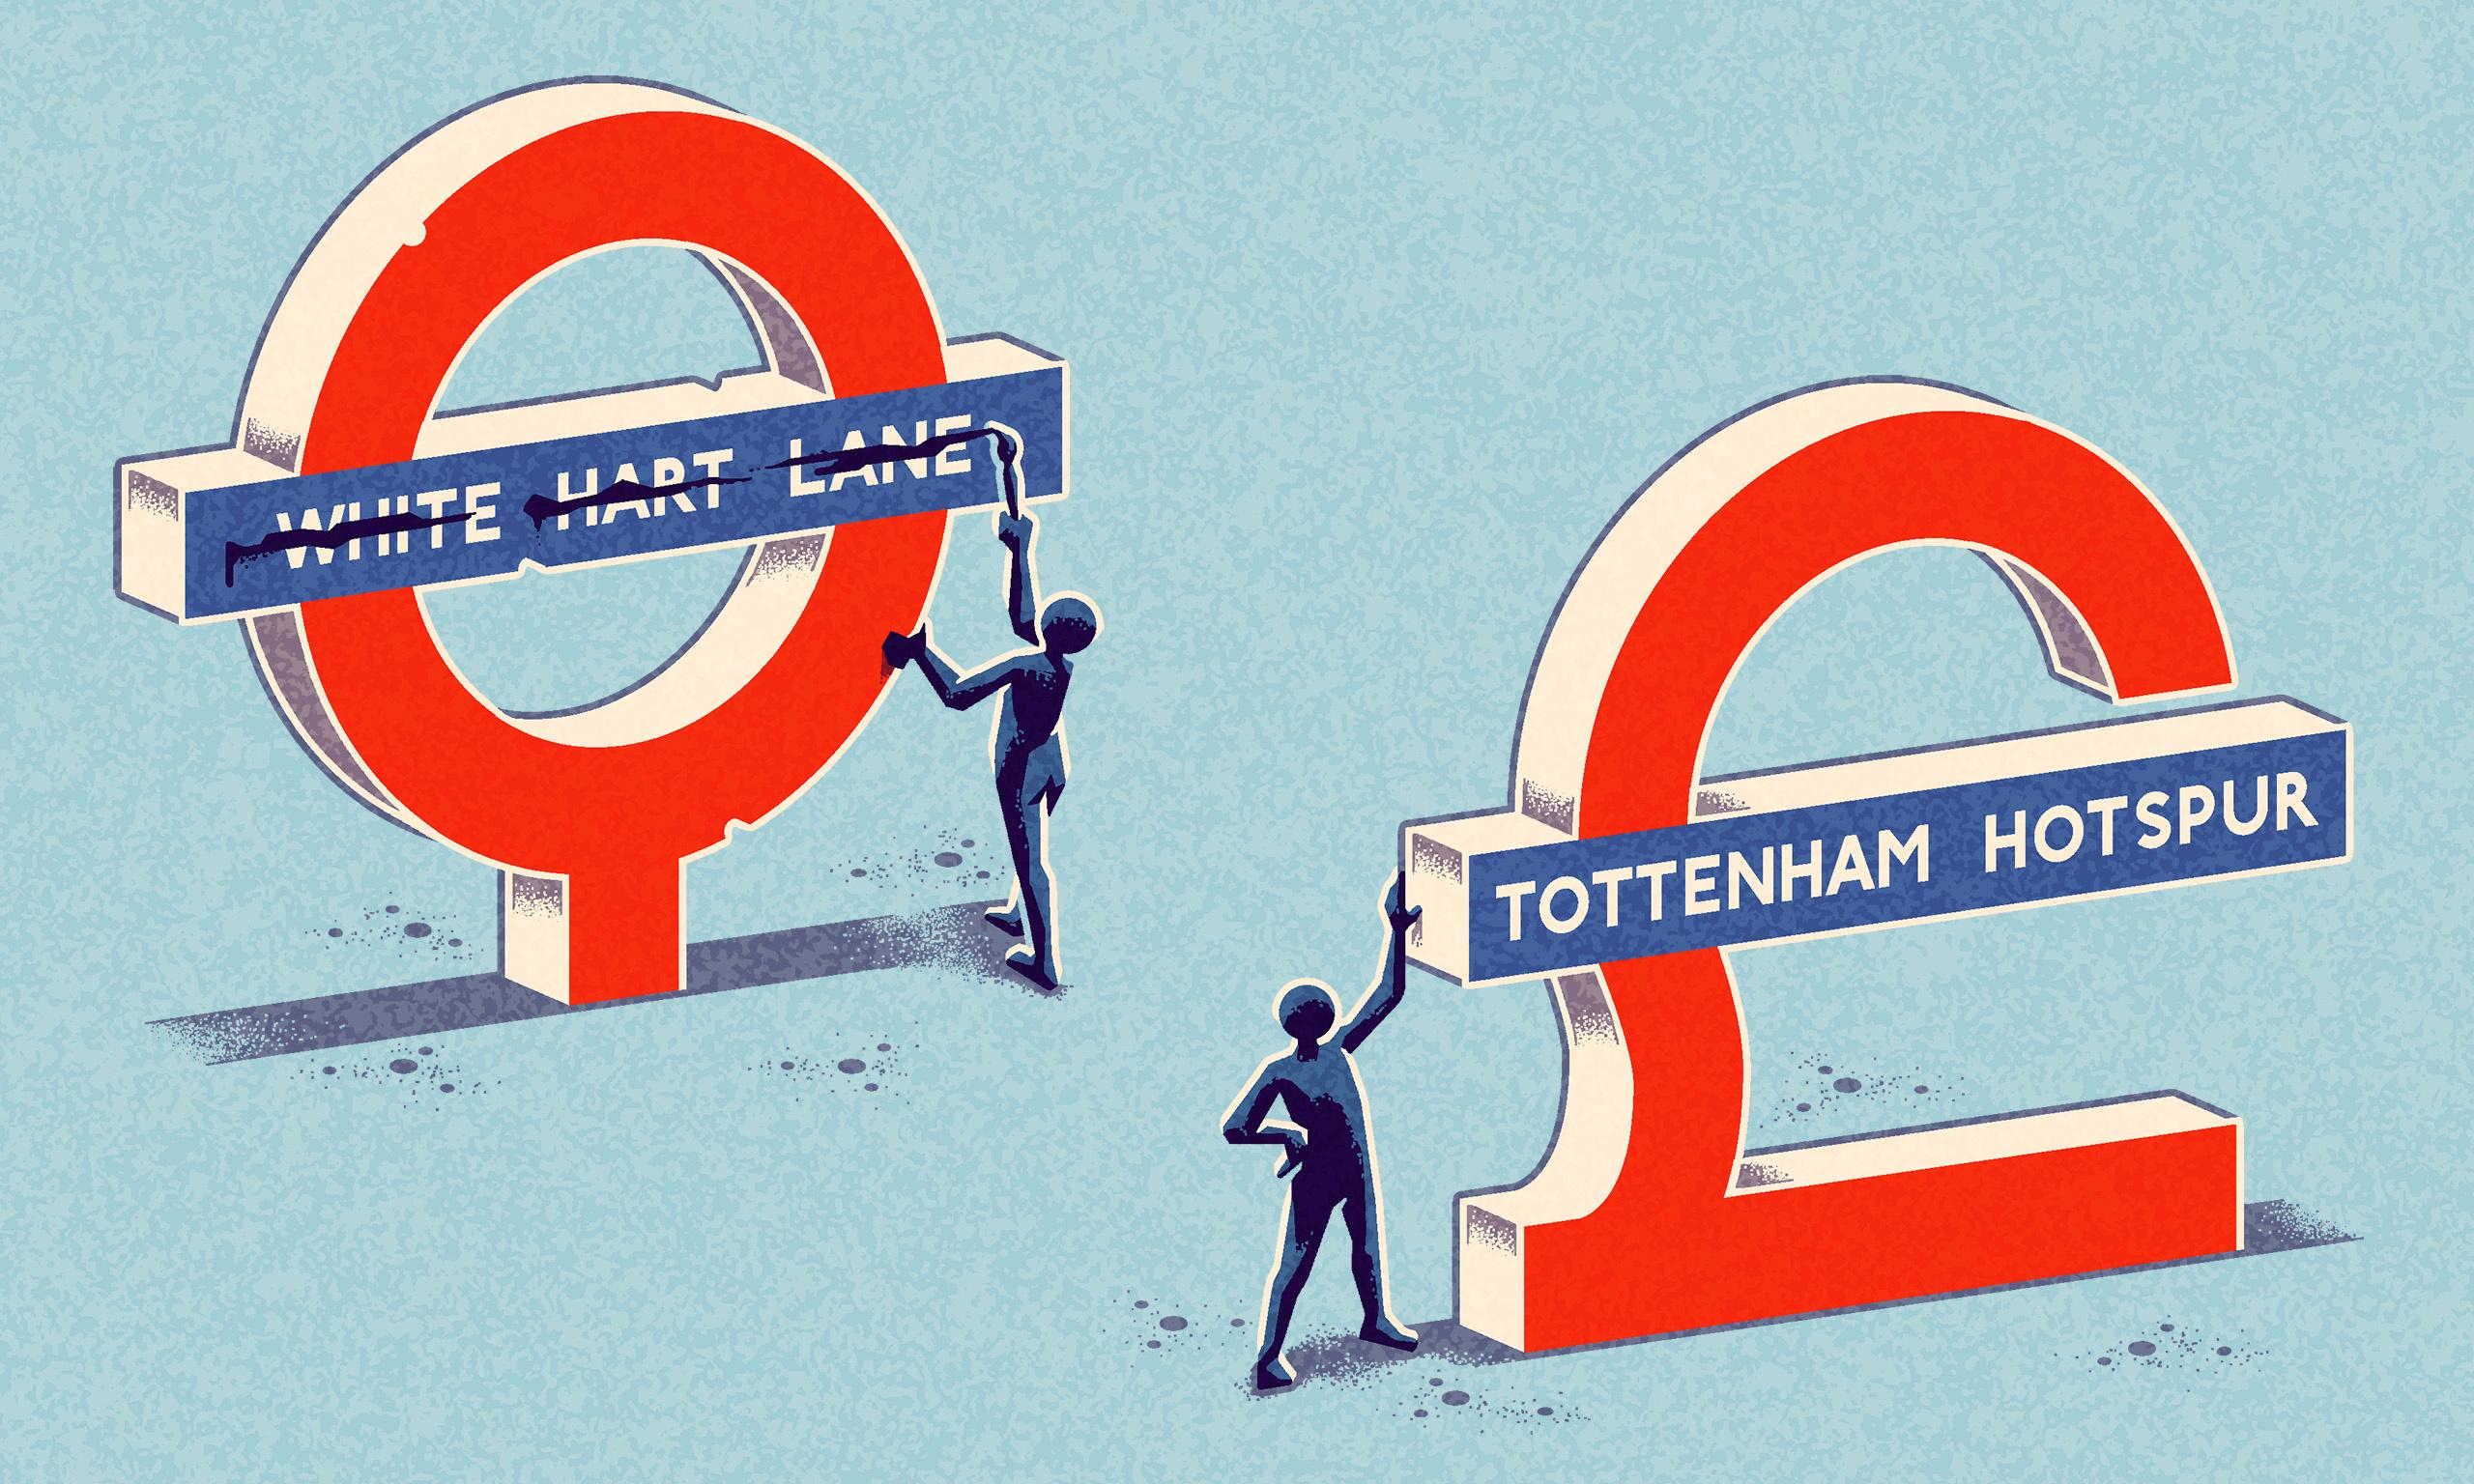 Tottenham Hotspur station? Some hate it, but branding the railways is nothing new